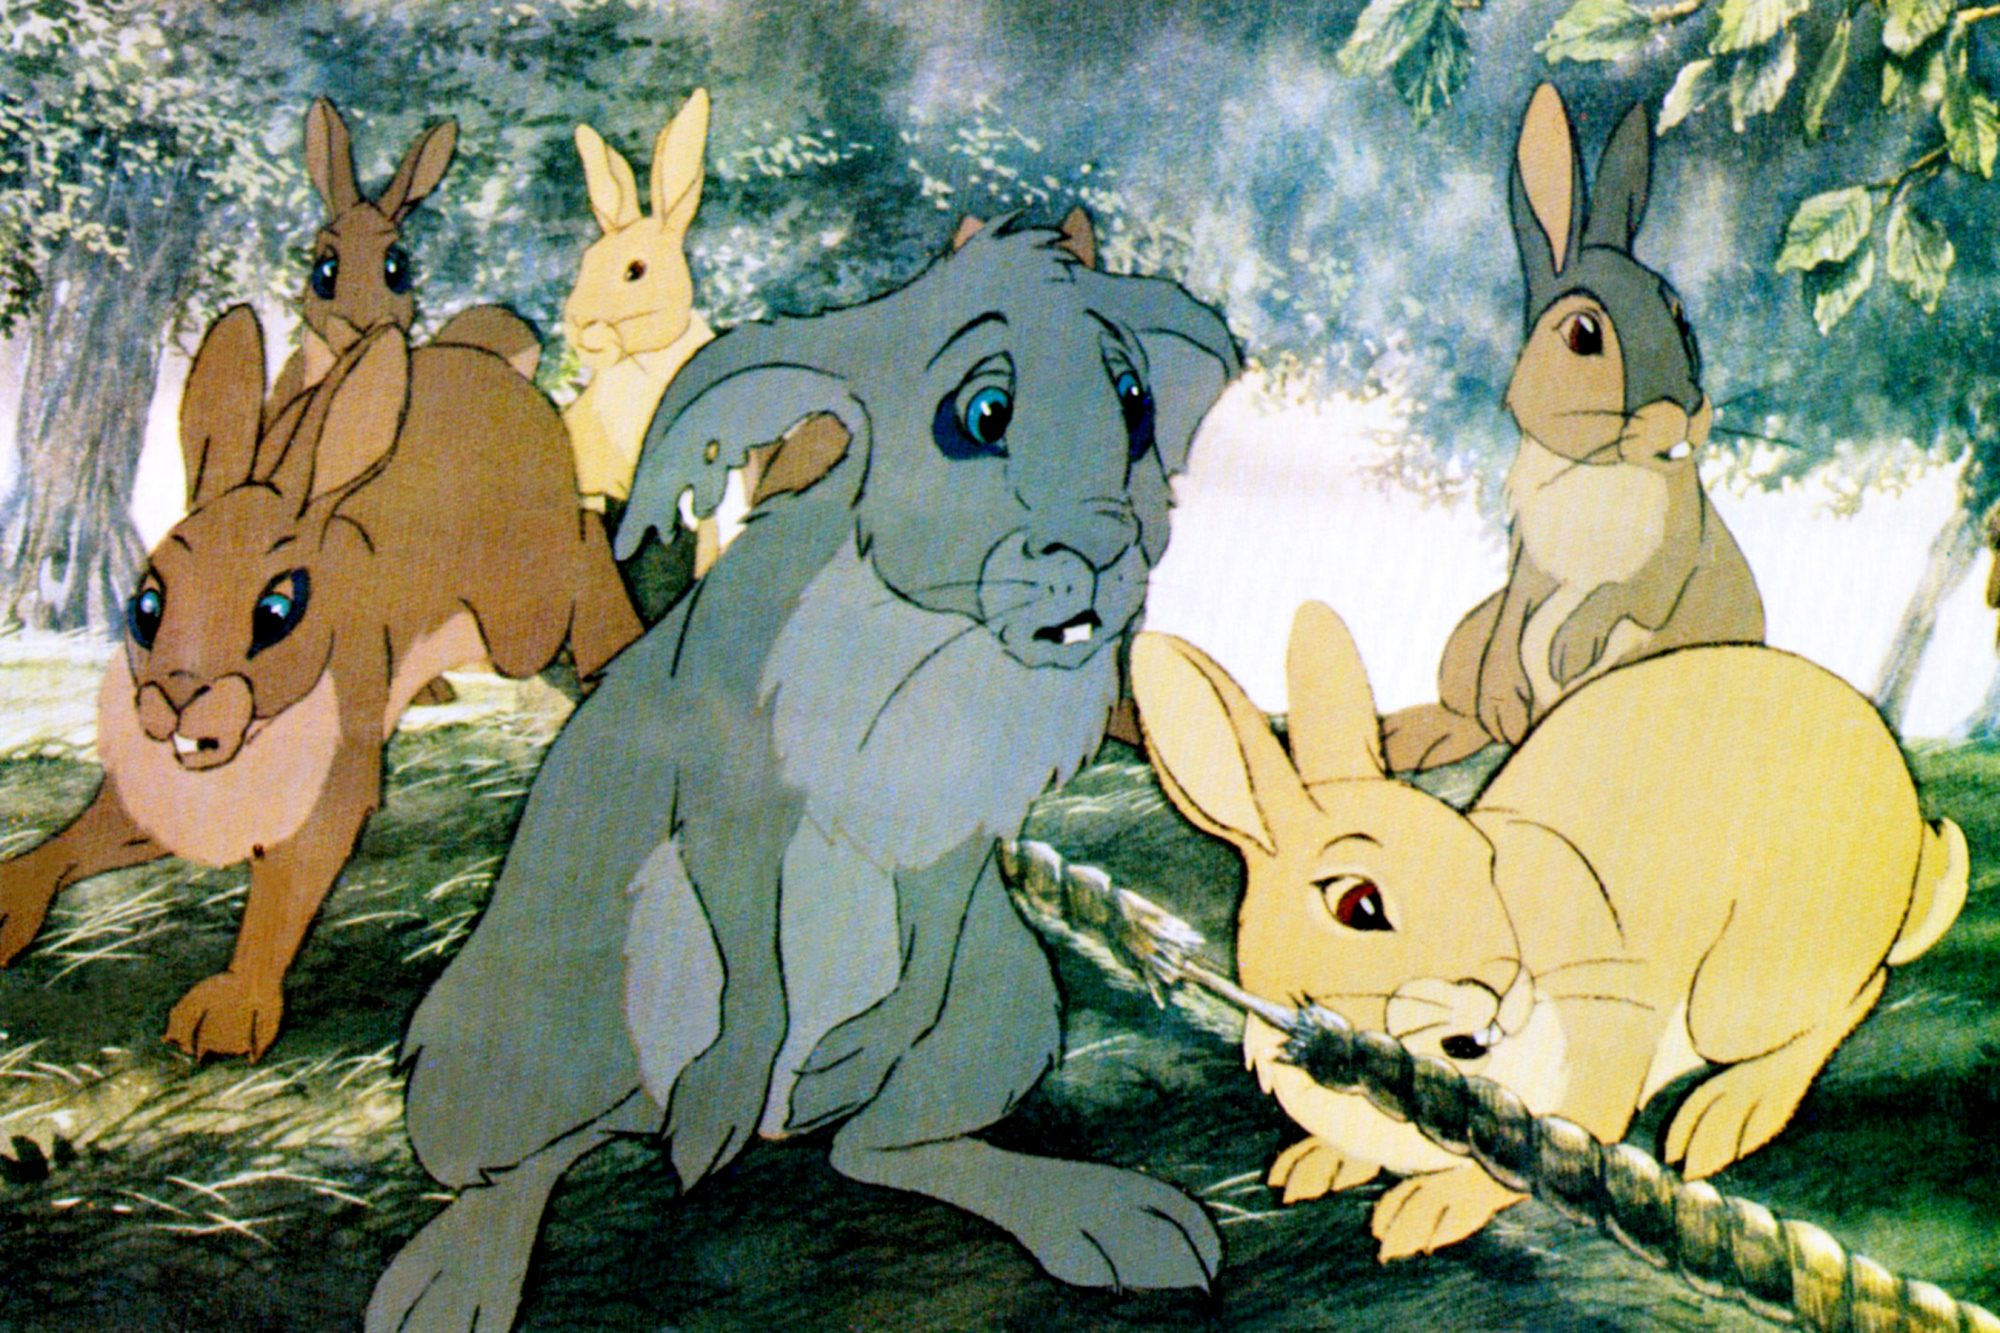 WATERSHIP DOWN, 1978, © Avco Embassy/courtesy Everett Collection